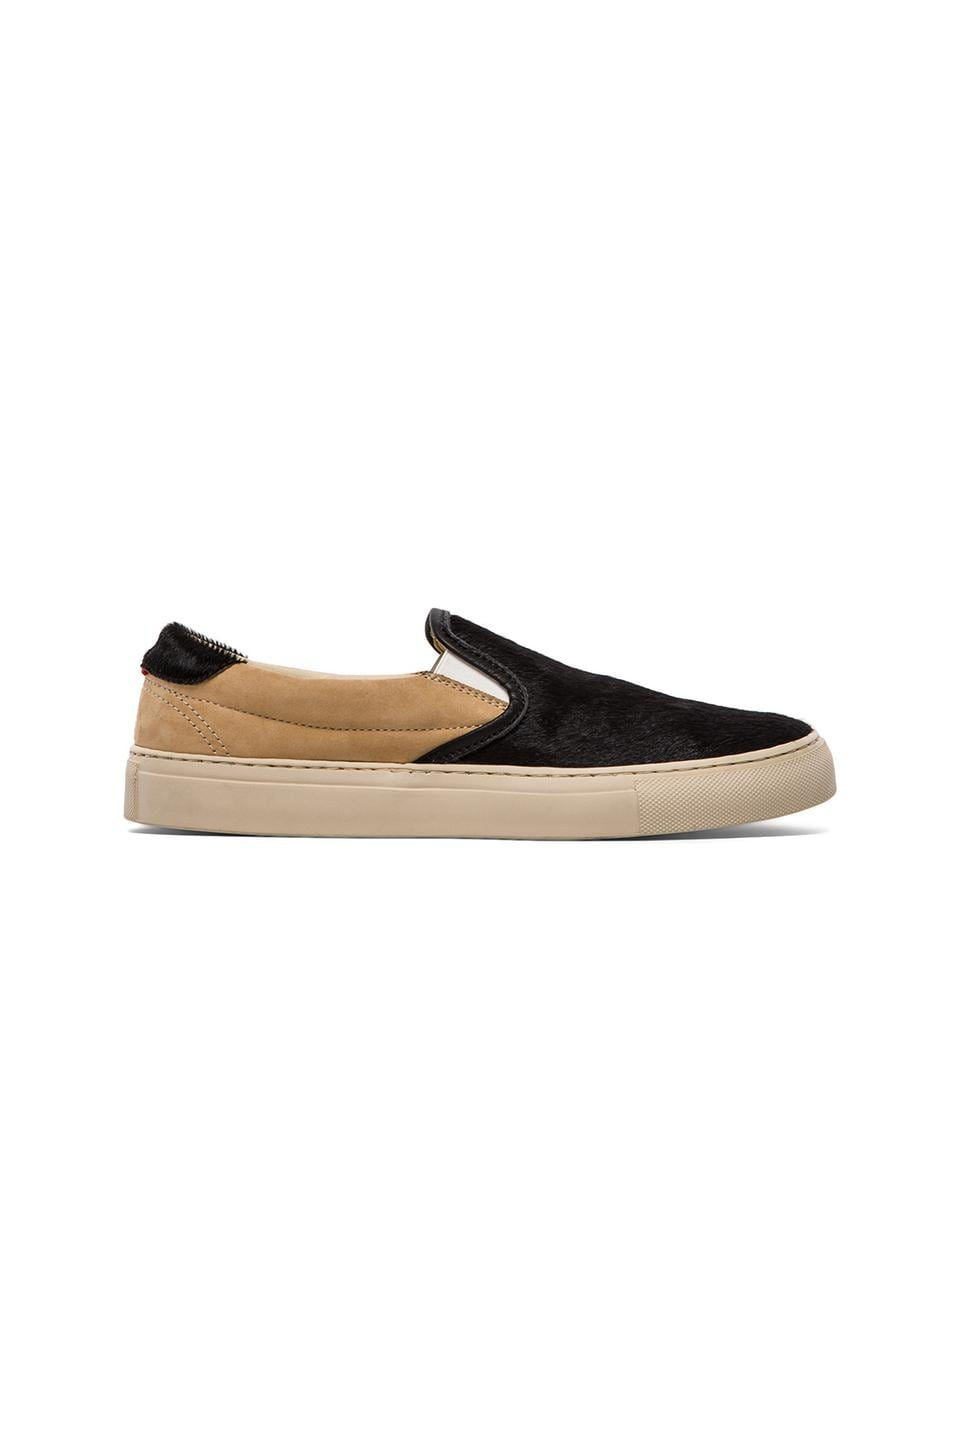 Diemme Garda Pony Hair Slip On in Black & Nude